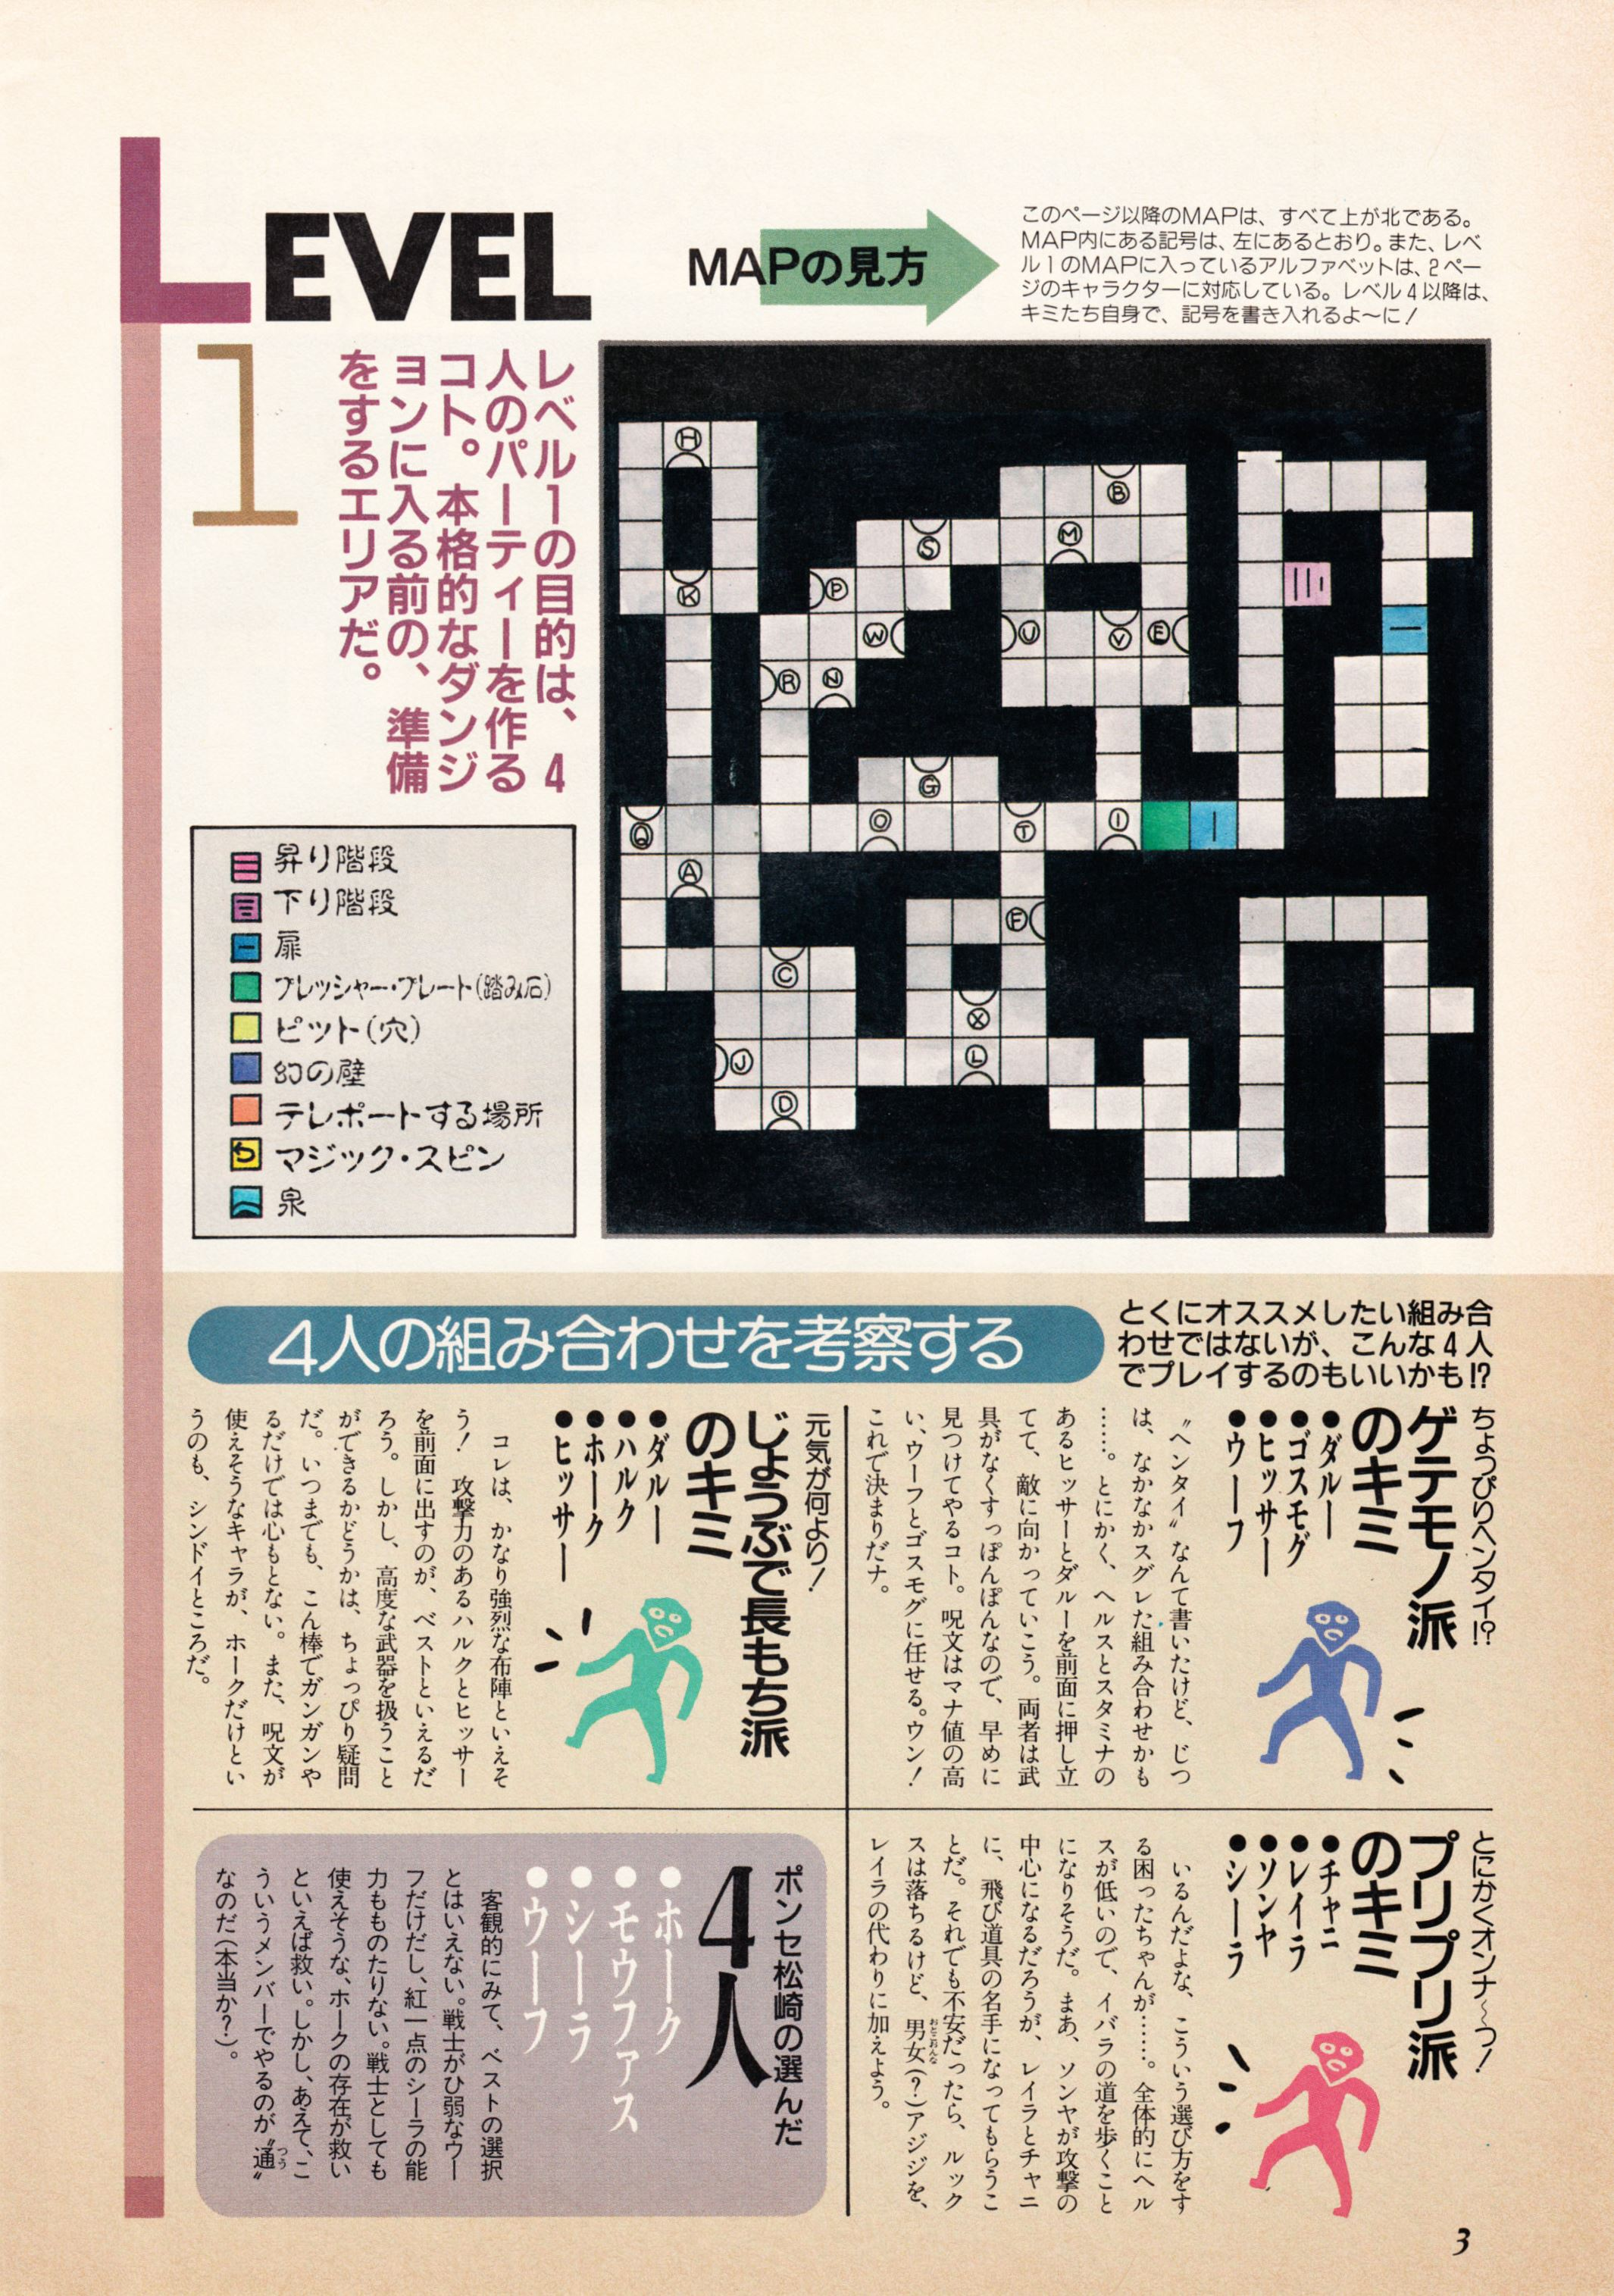 Supplement - Dungeon Master Companion Manual Guide published in Japanese magazine 'Popcom', Vol 4 No 1 01 April 1990, Page 5